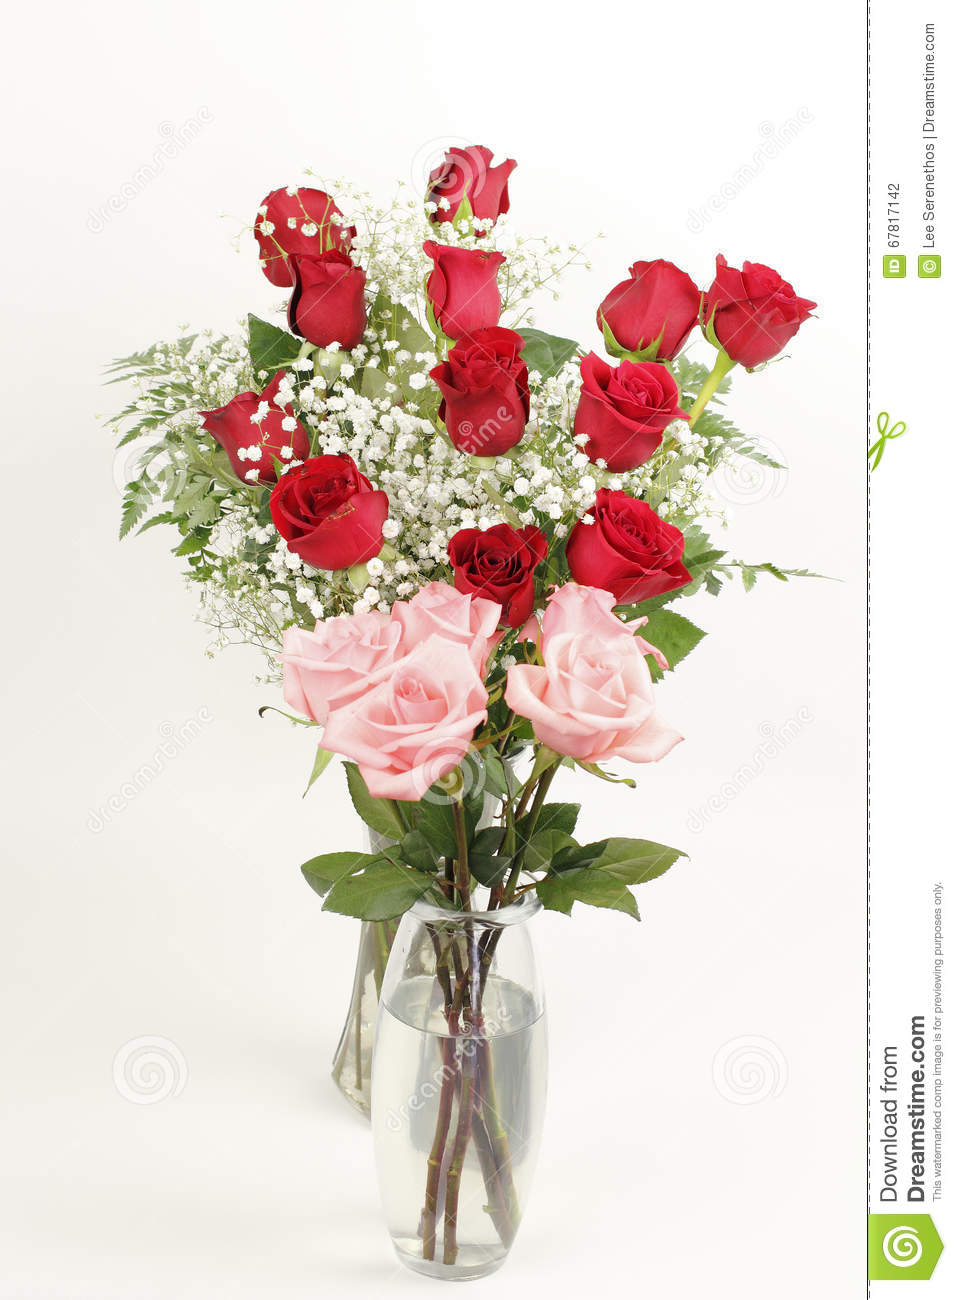 Red And Pink Rose Bouquets Stock Photo - Image: 67817142